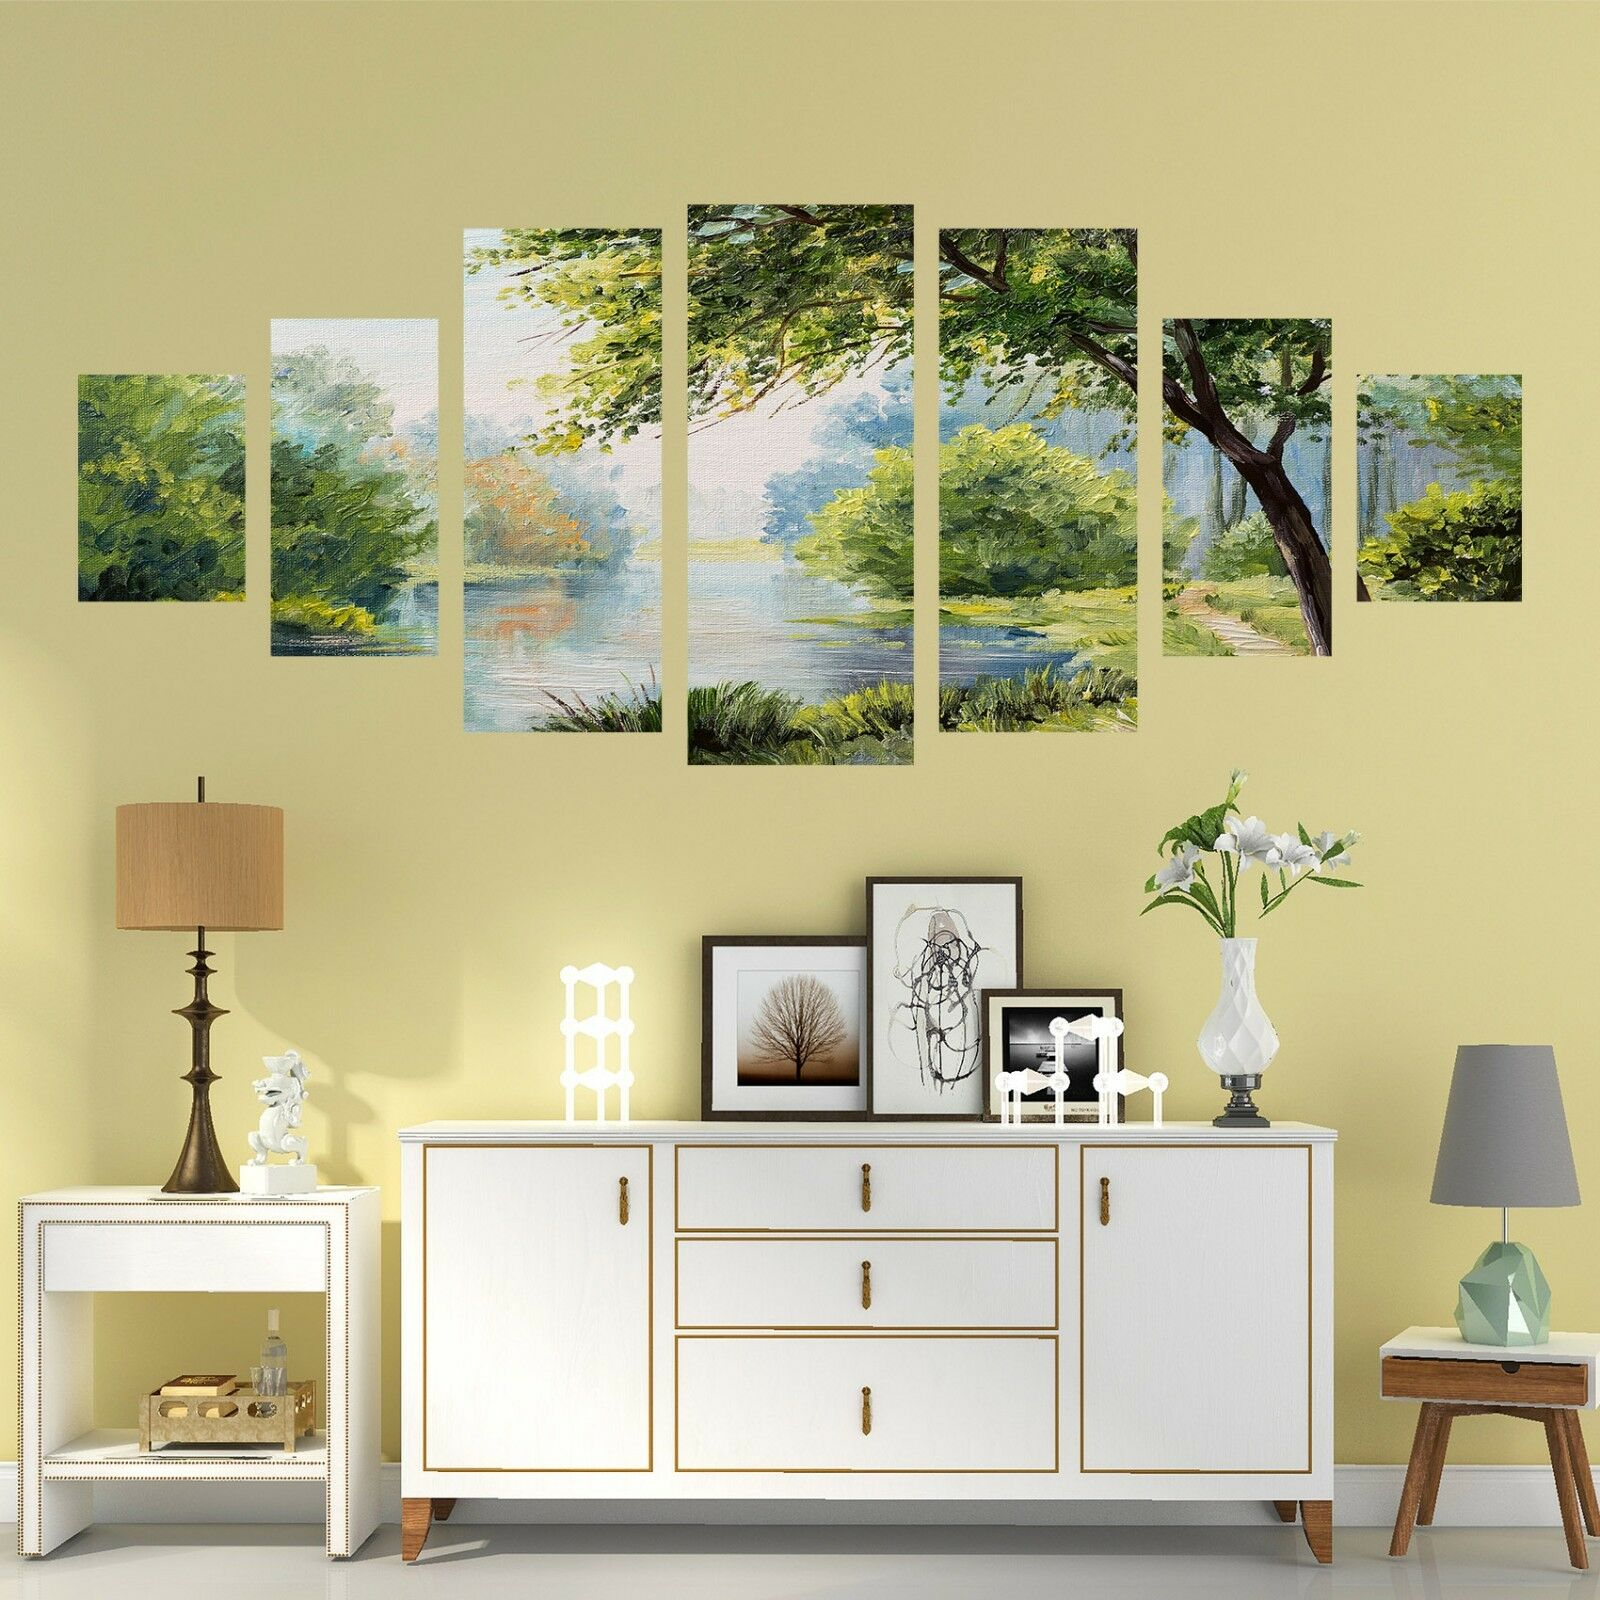 3D Natural View 576 Unframed Print Wall Paper Decal Wall Deco Indoor AJ Wall